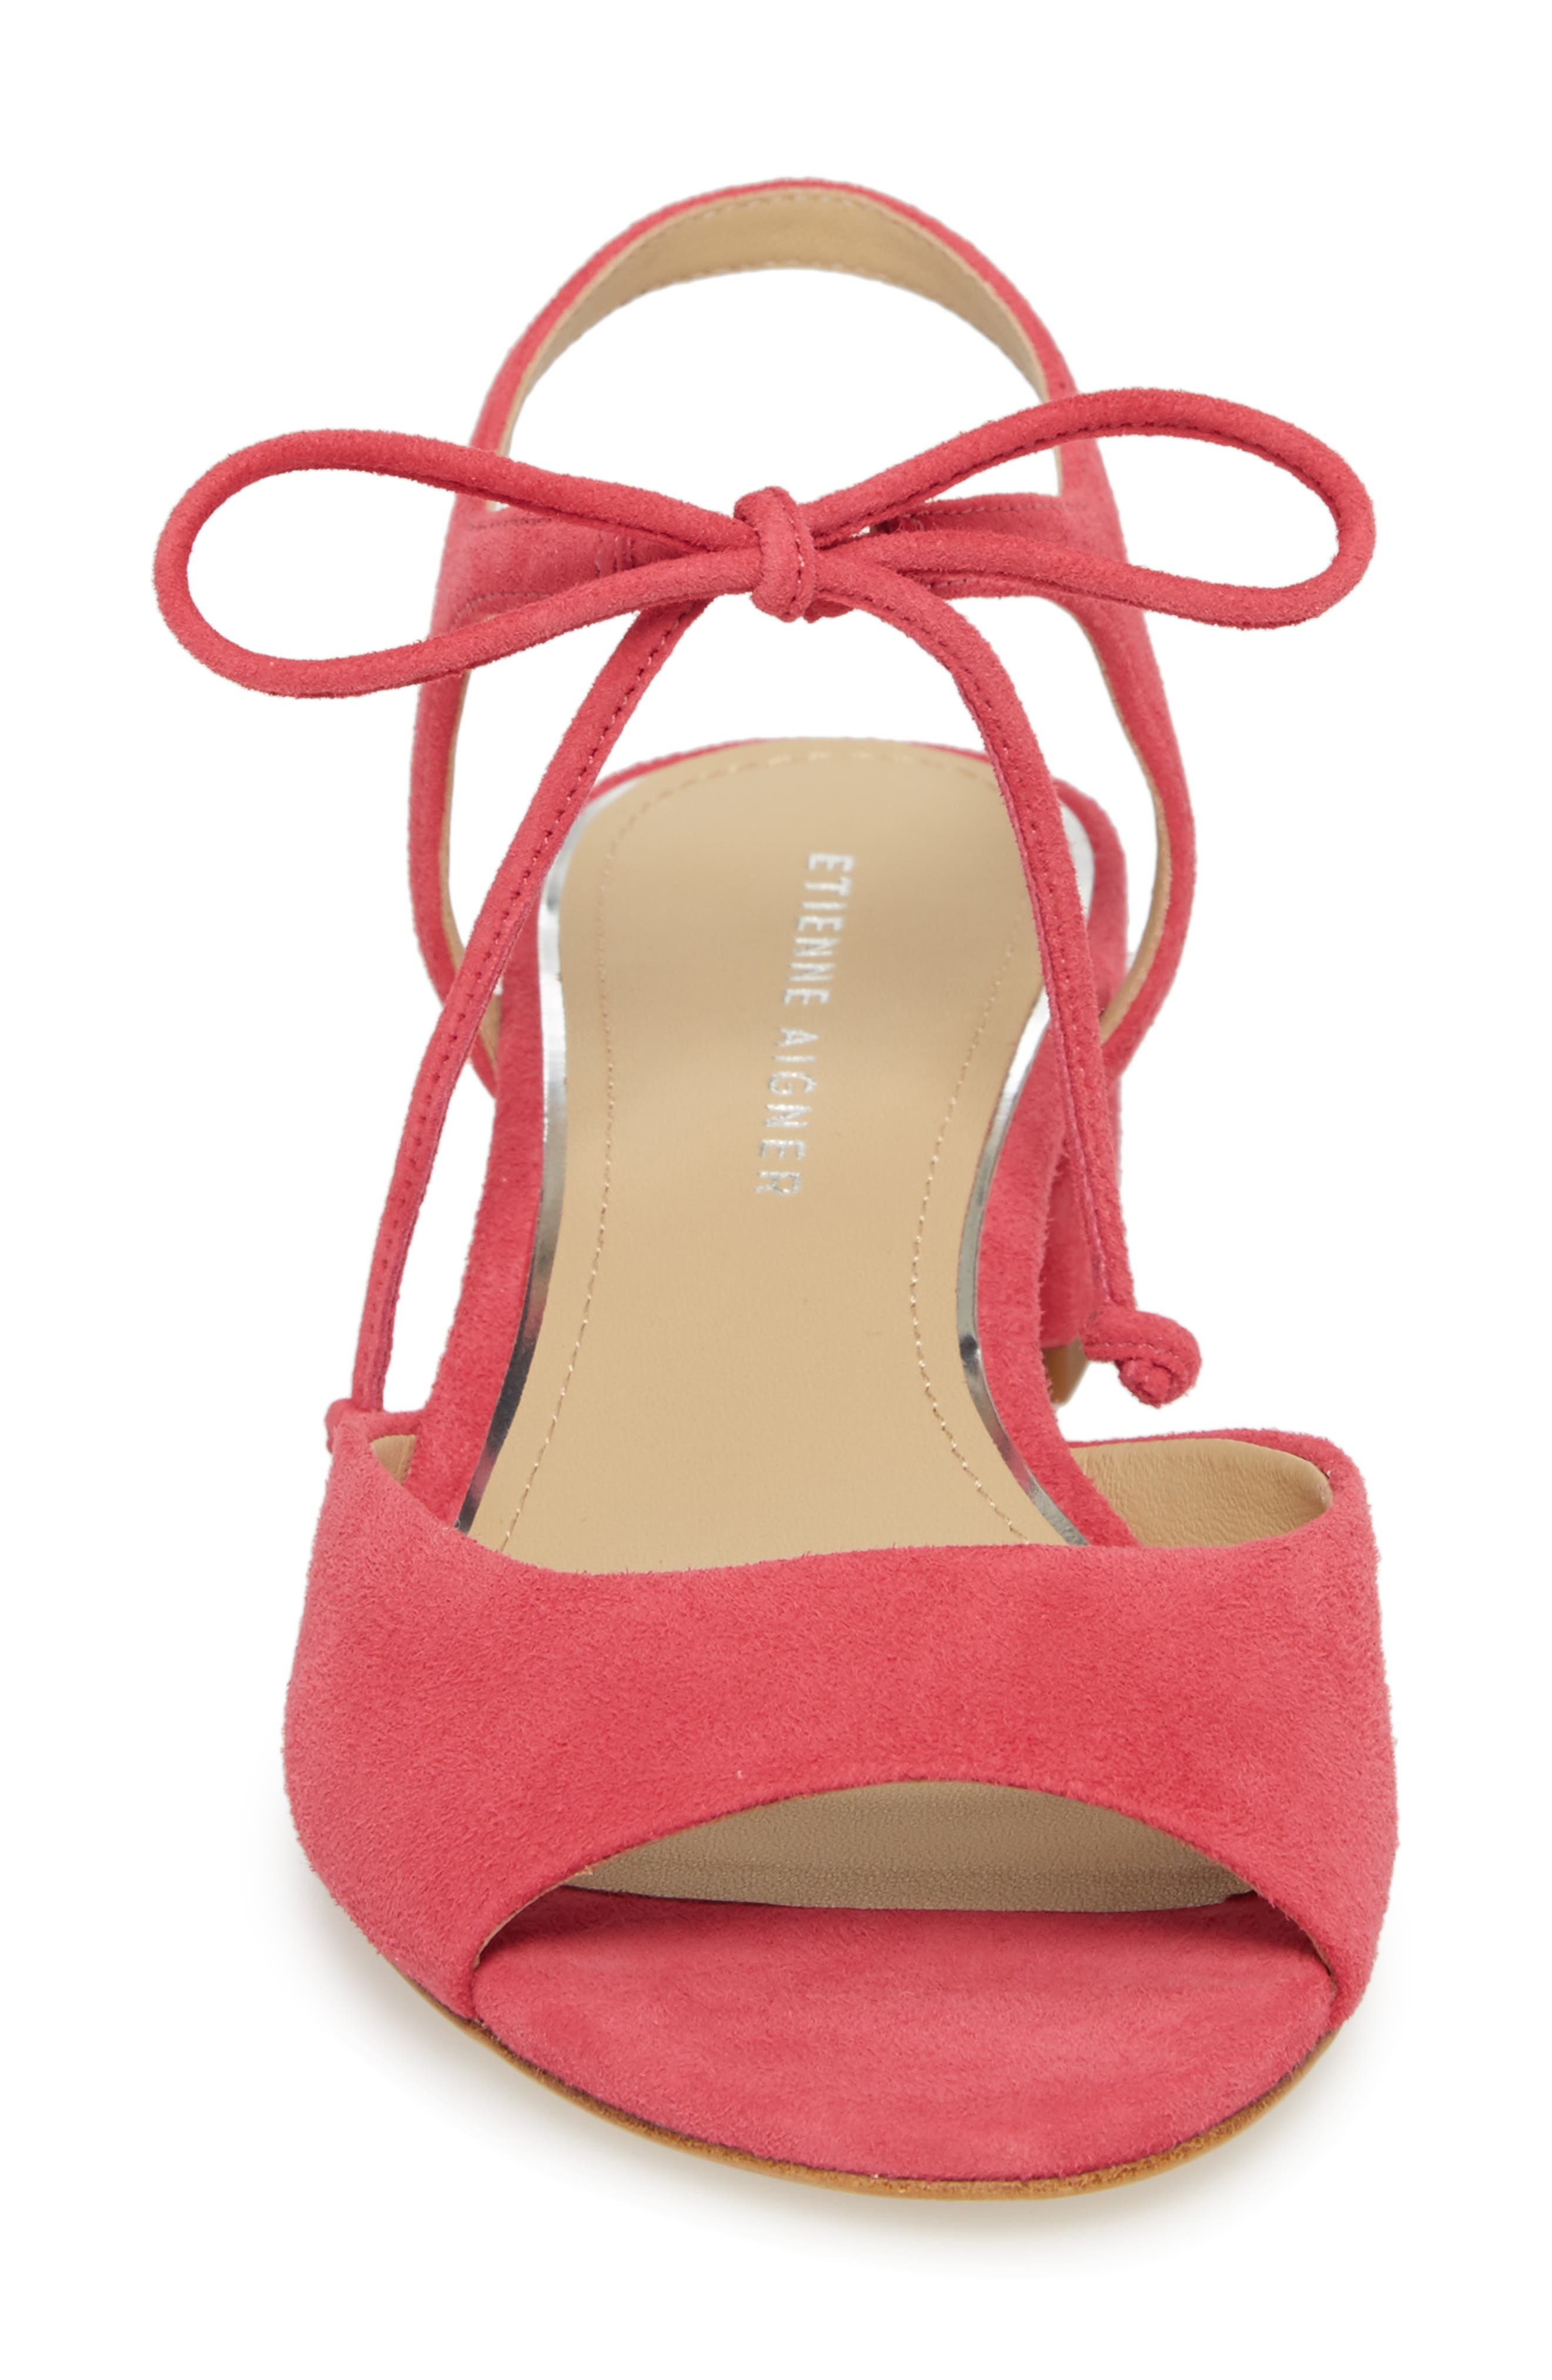 Belize Strappy Sandal,                             Alternate thumbnail 4, color,                             Peony Suede